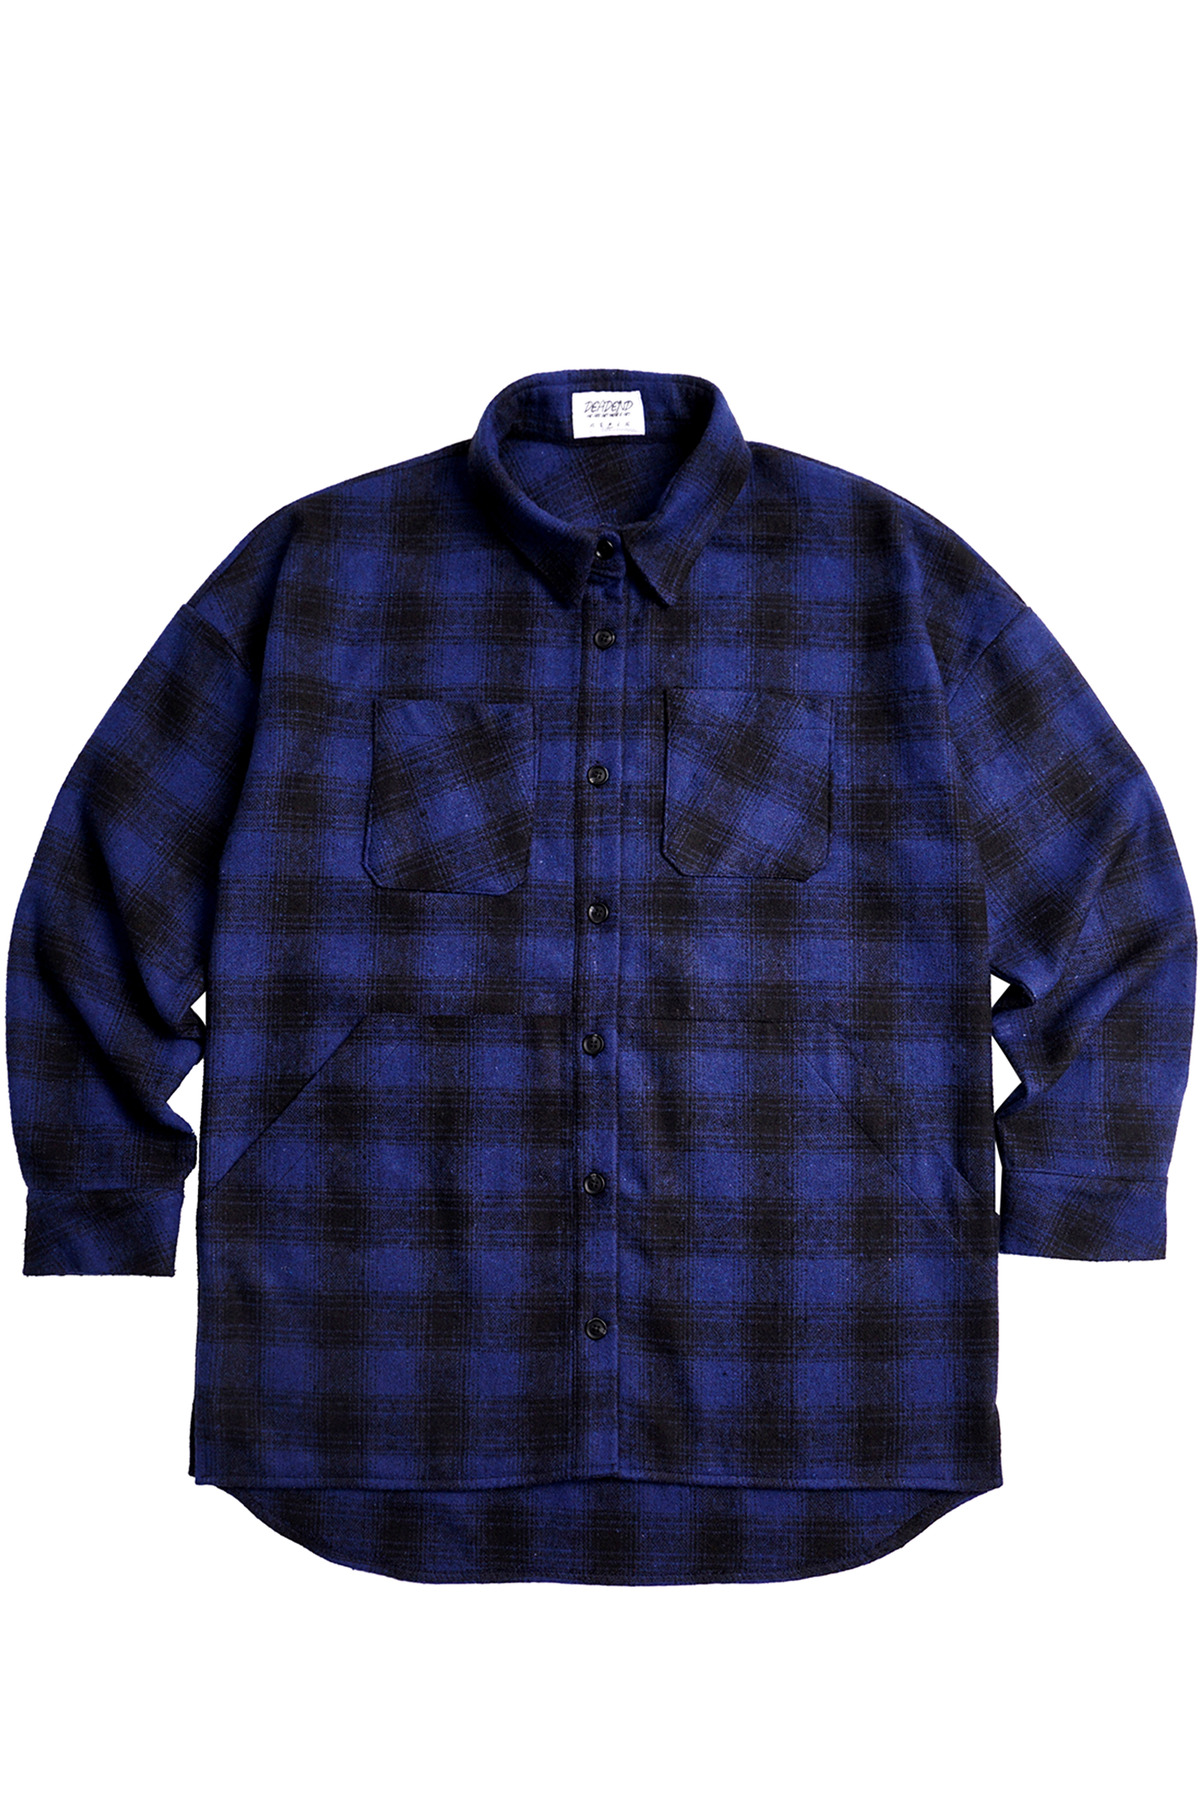 BLUE FLANNEL POCKET SHIRTS